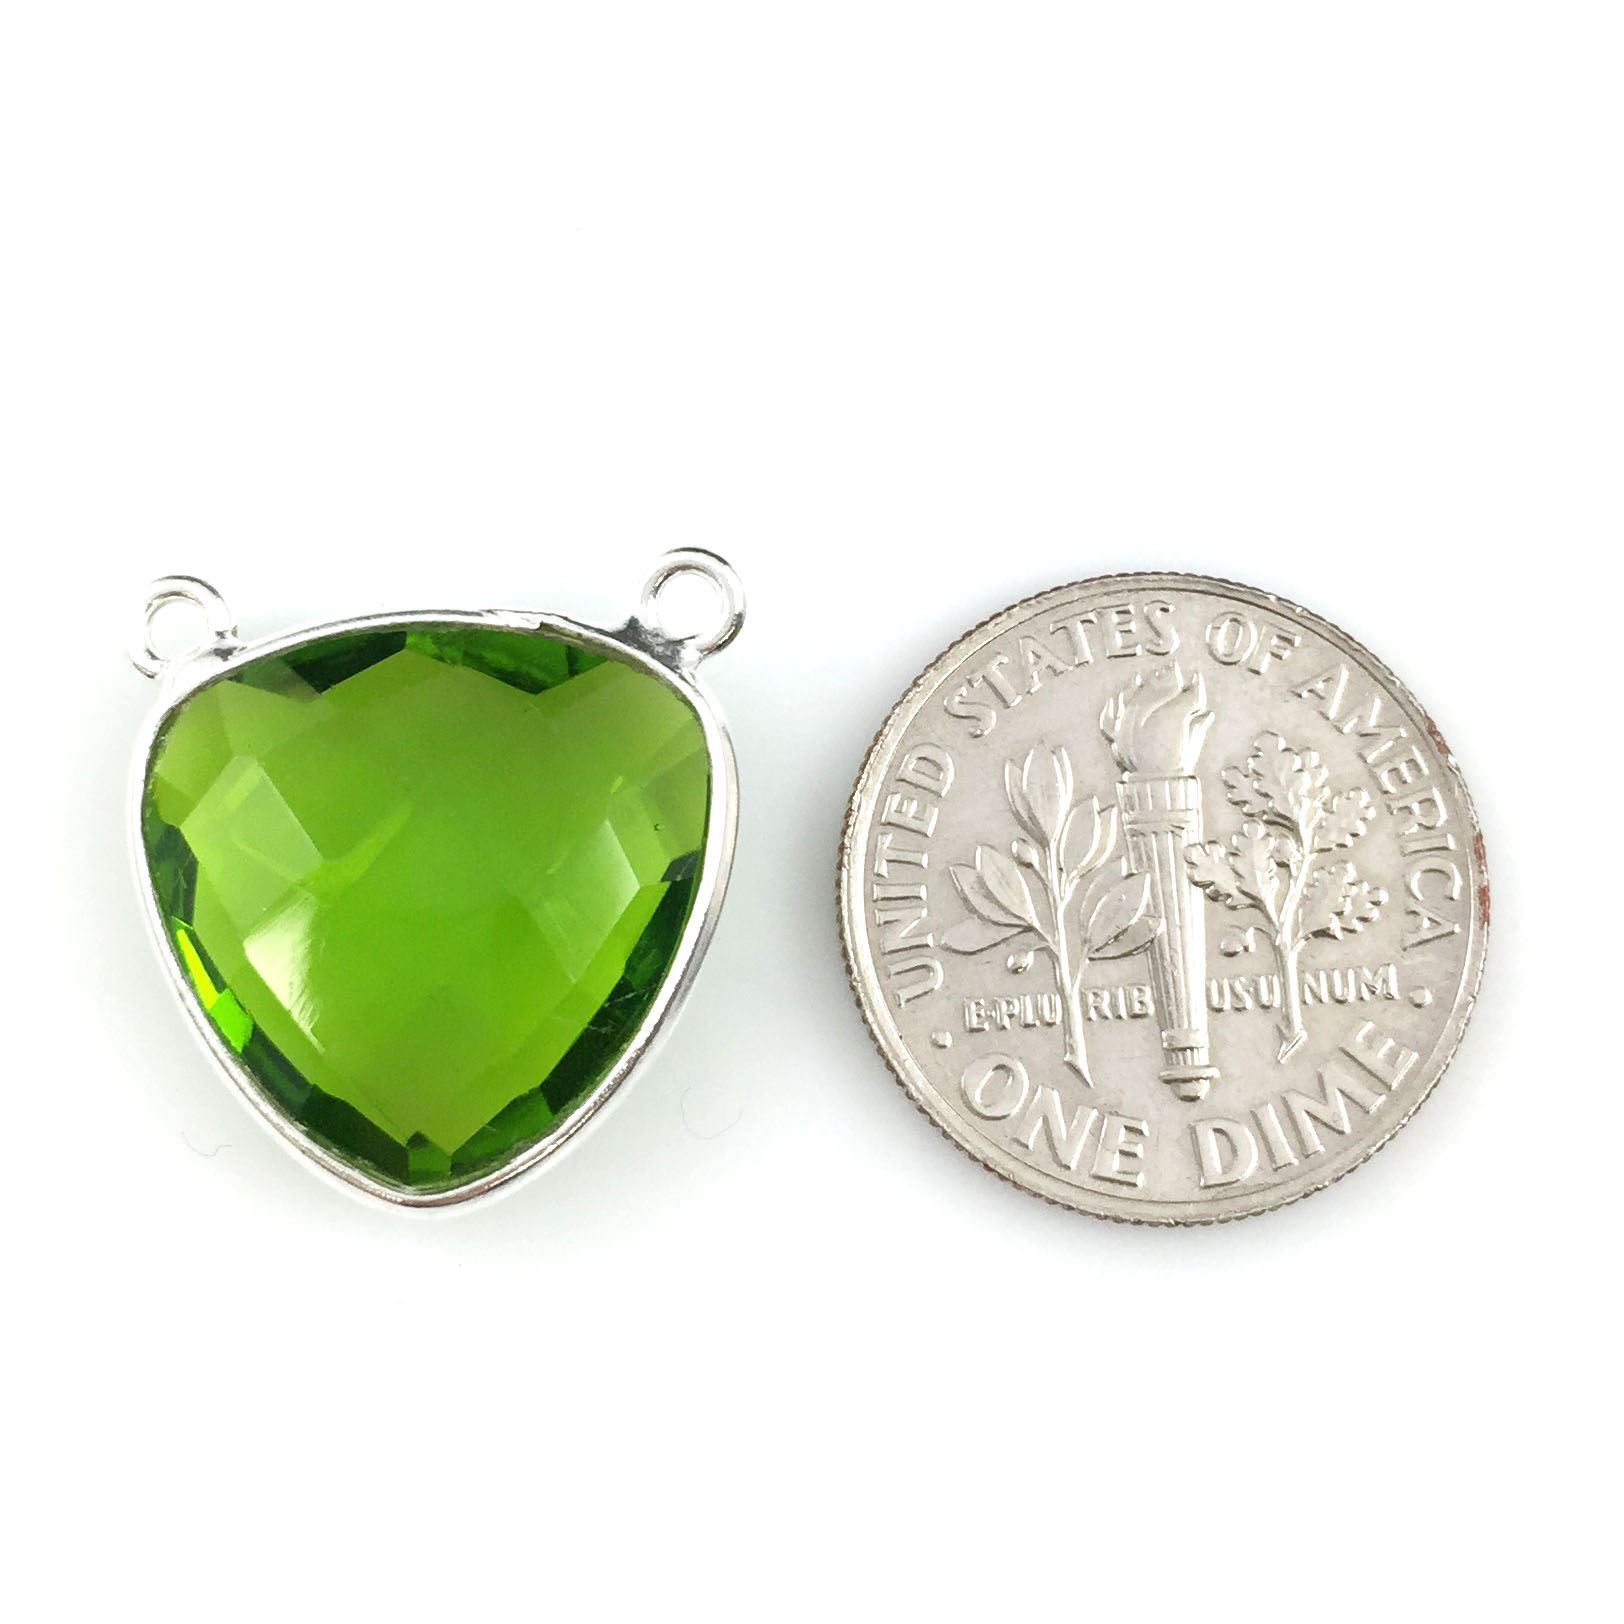 Bezel Gemstone Connector Pendant - Peridot Quartz - Sterling Silver - Small Trillion Shaped Faceted - 15mm - 1 piece